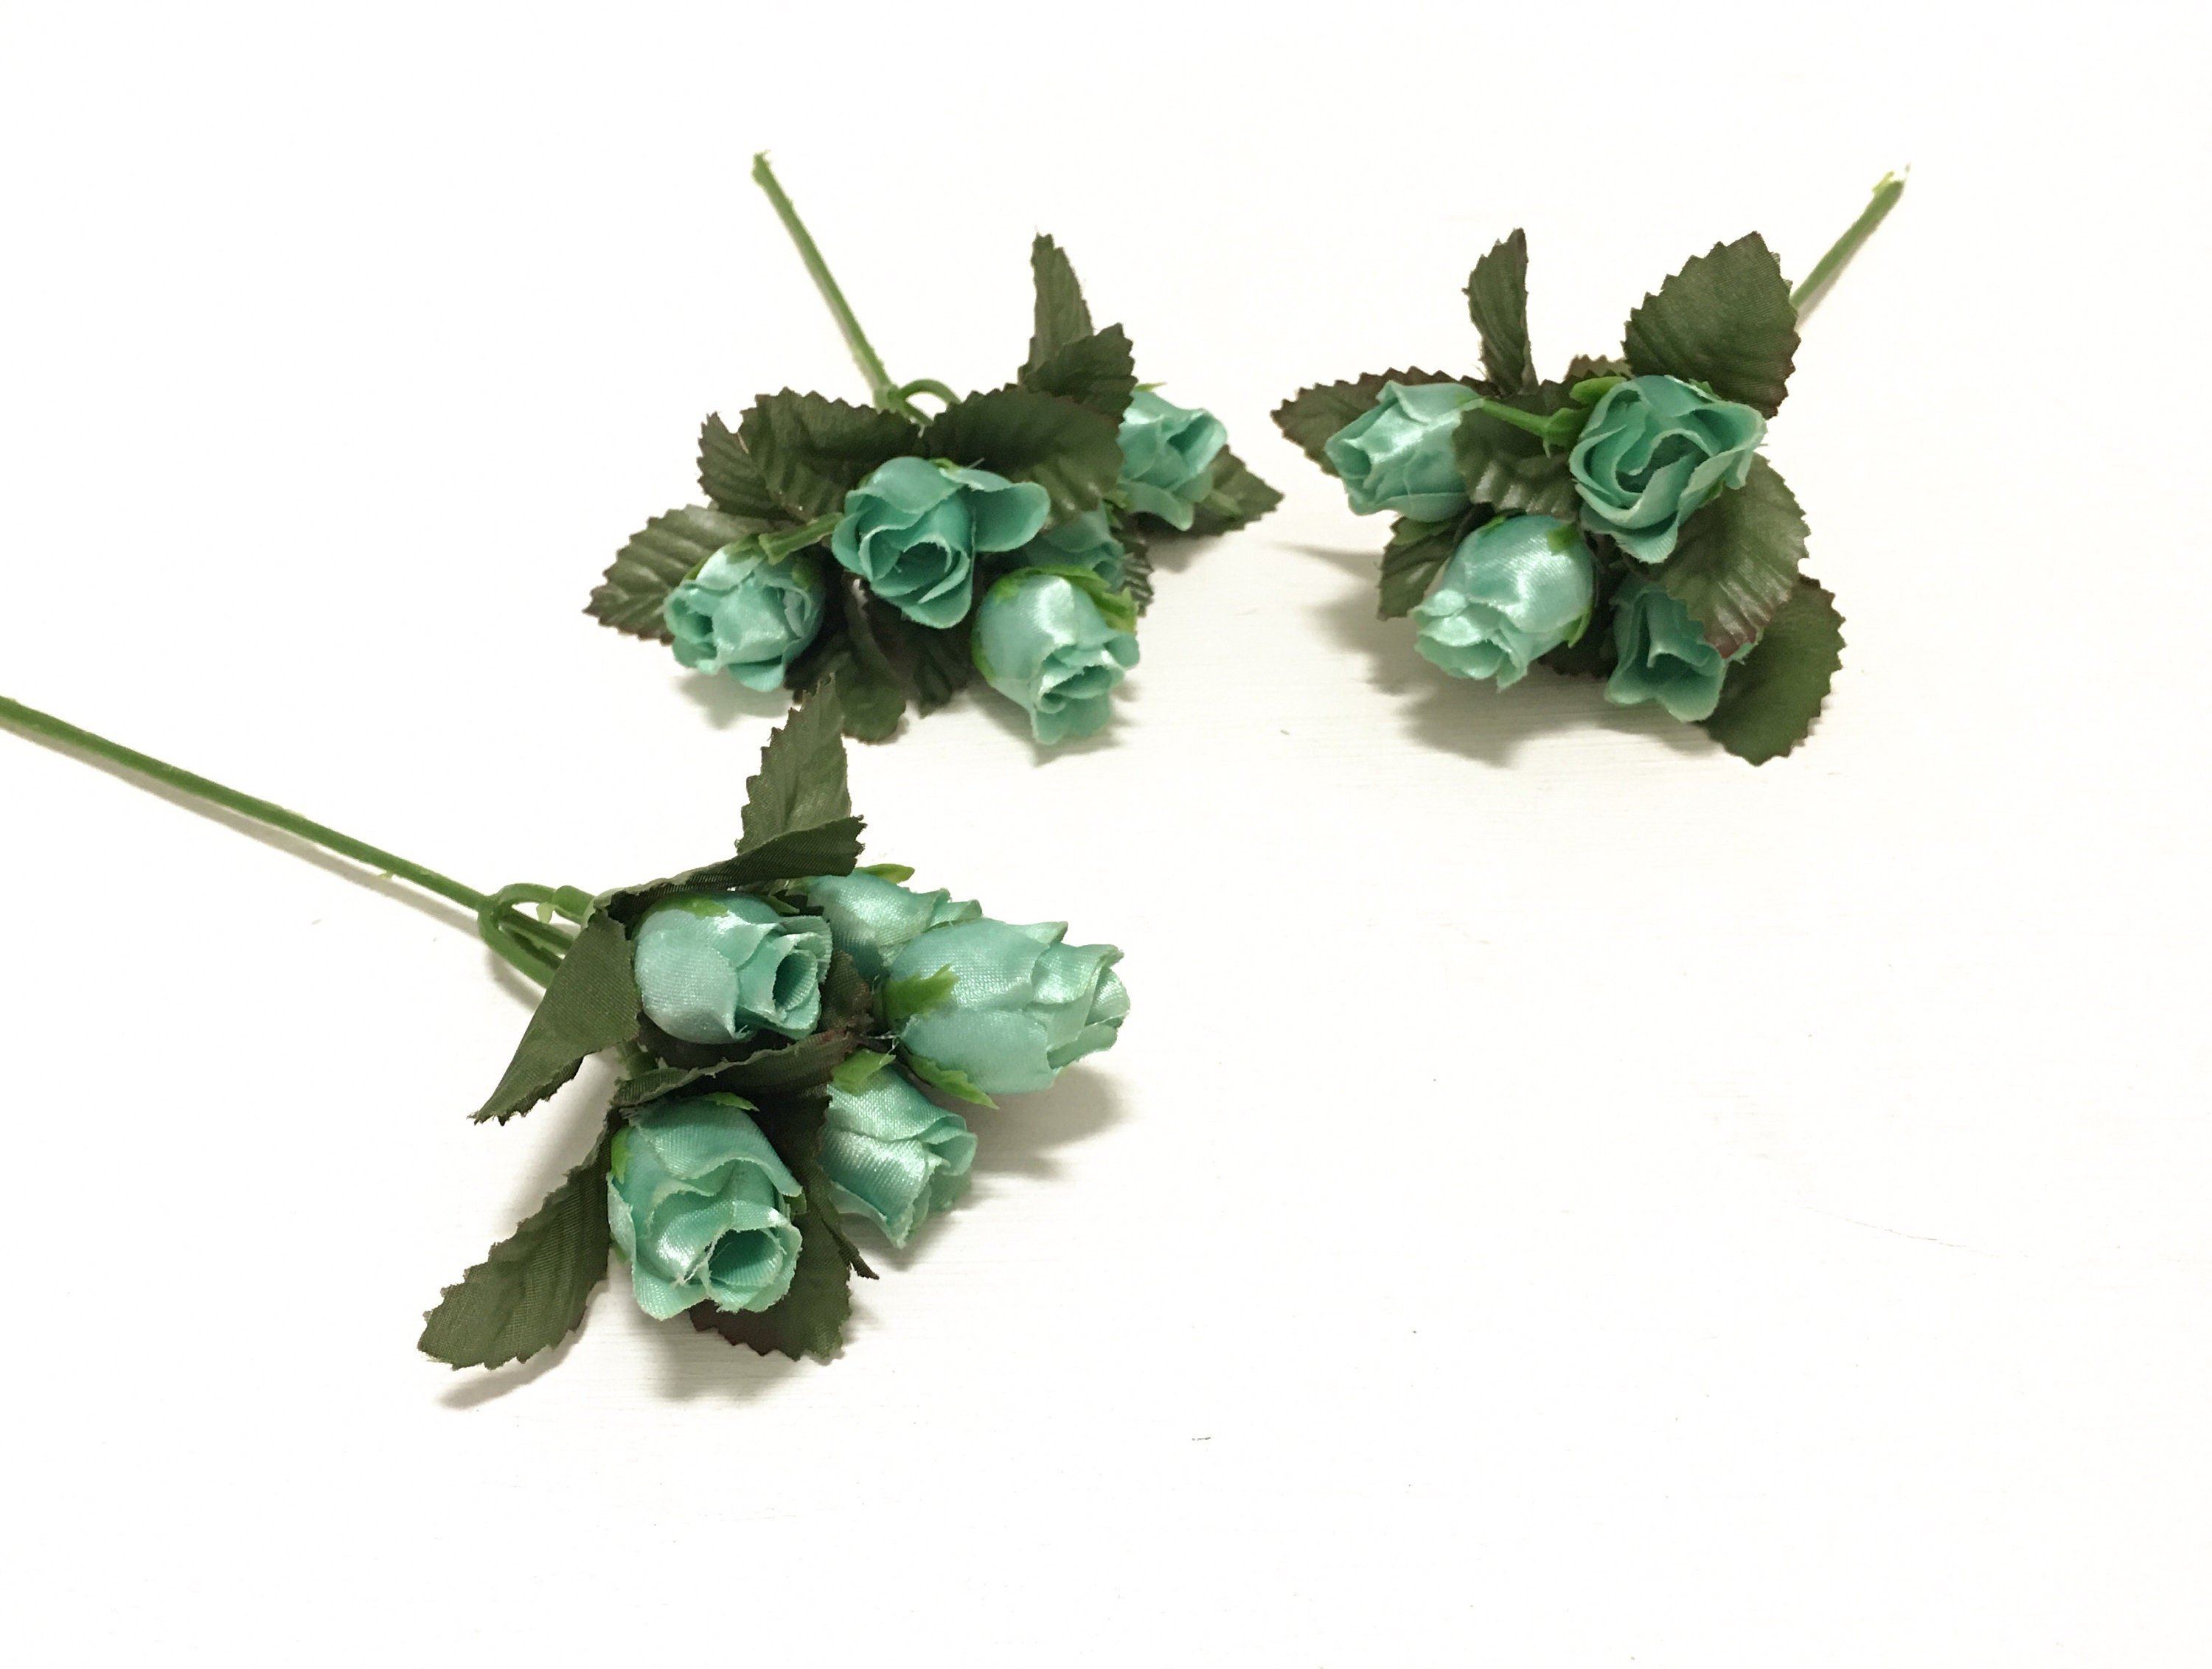 Seafoam Green Satin Rose Picks 15 Mini Roses Artificial Etsy